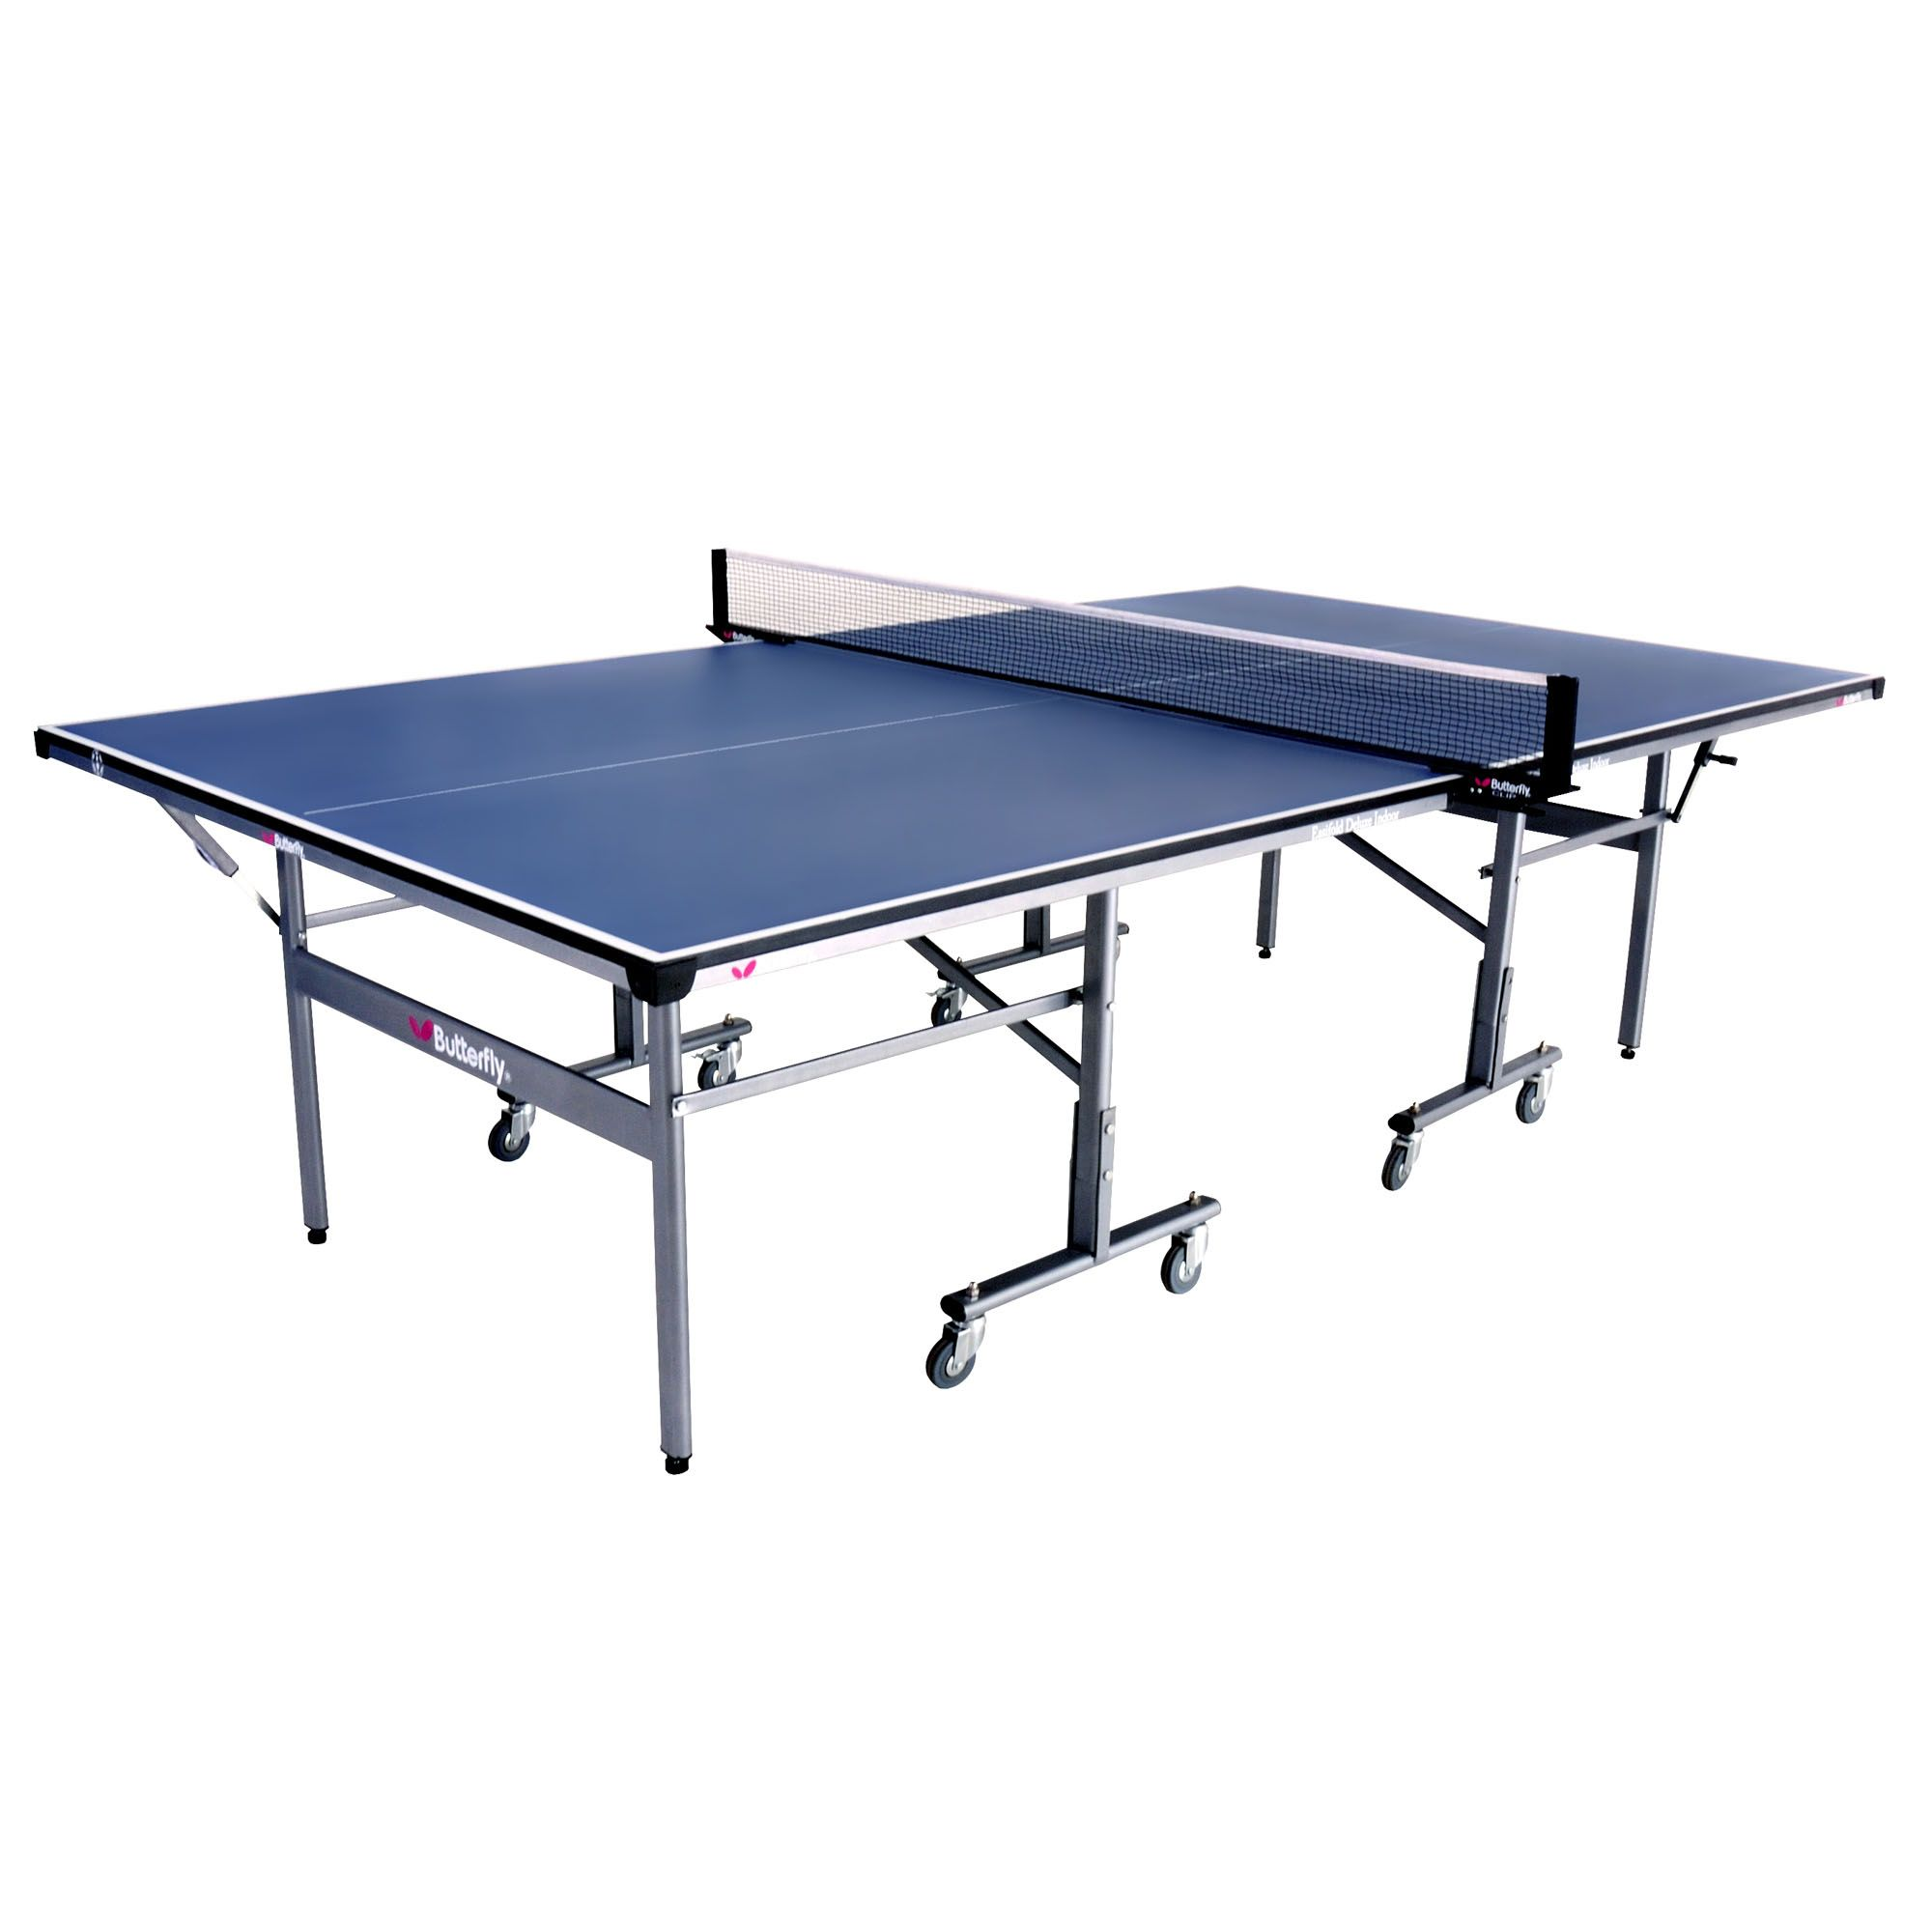 Most table tennis tables have a wood or composite surface, designed to deliver quick response and bounce for intense play. For efficient play, choose a table that comes with storage, including racket holders, nets, scorers and built-in ball holders.